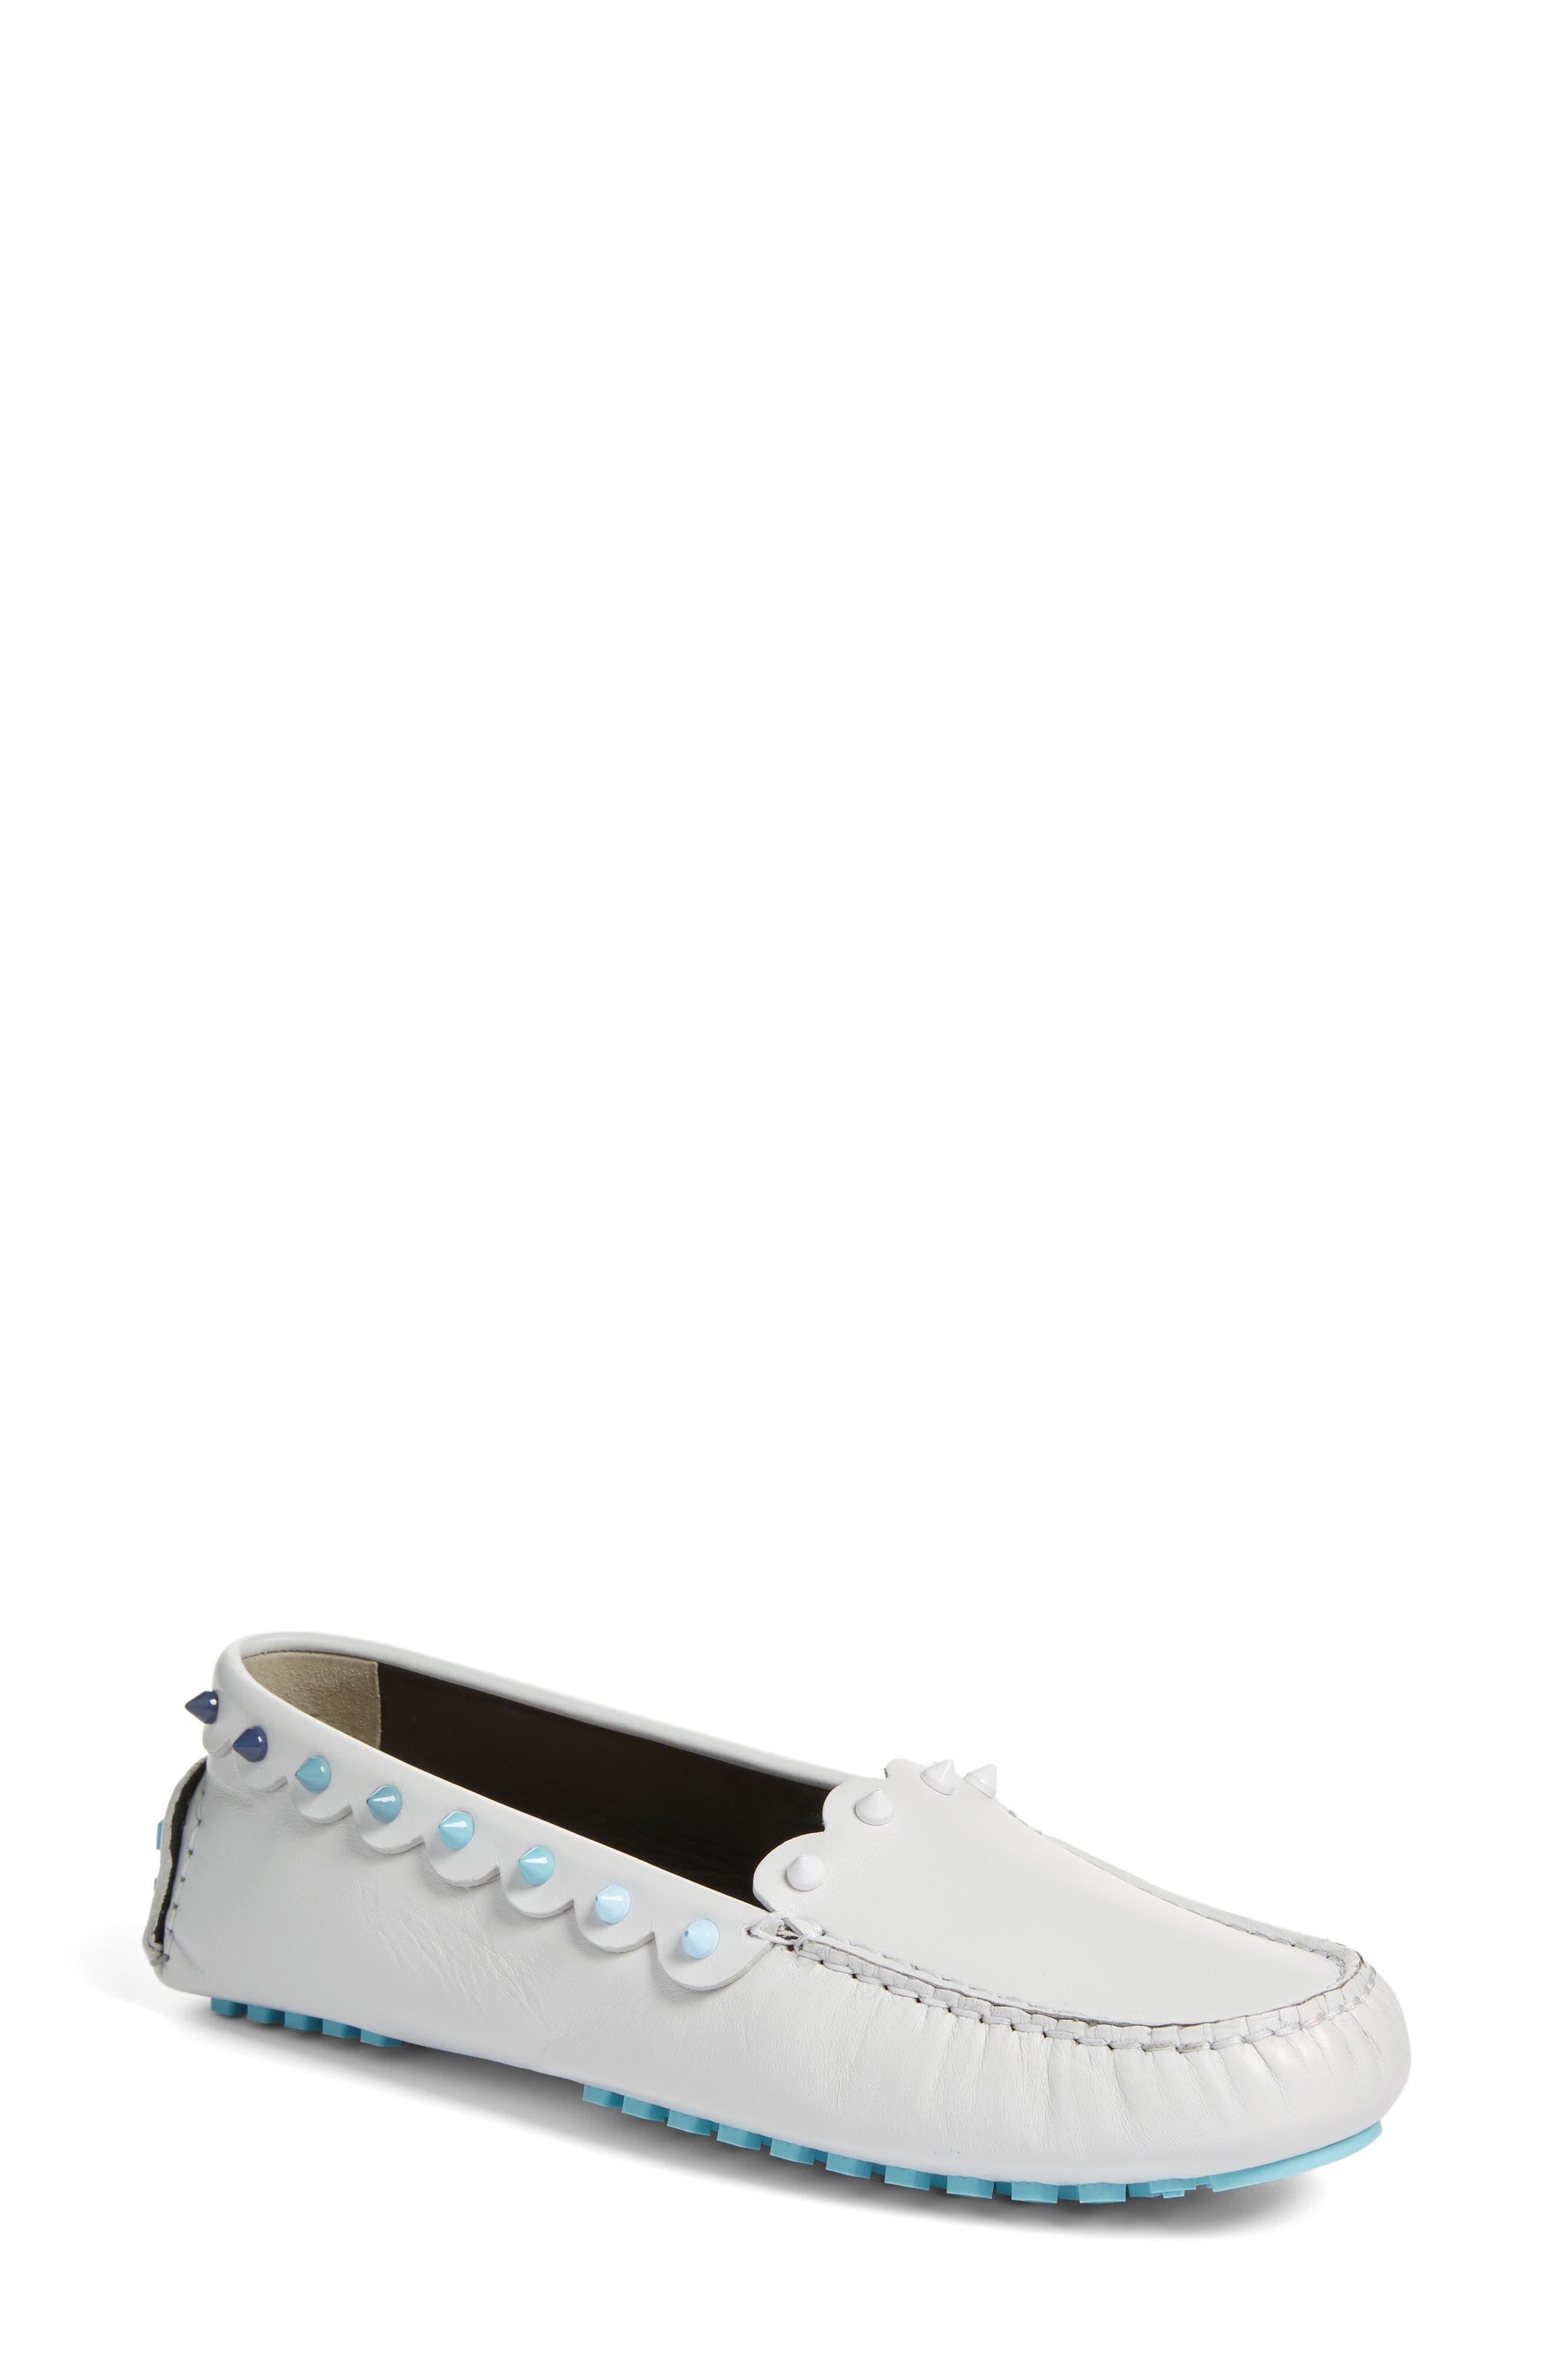 Alternate Image 1 Selected - Fendi Scallop Stud Driving Moccasin (Women)